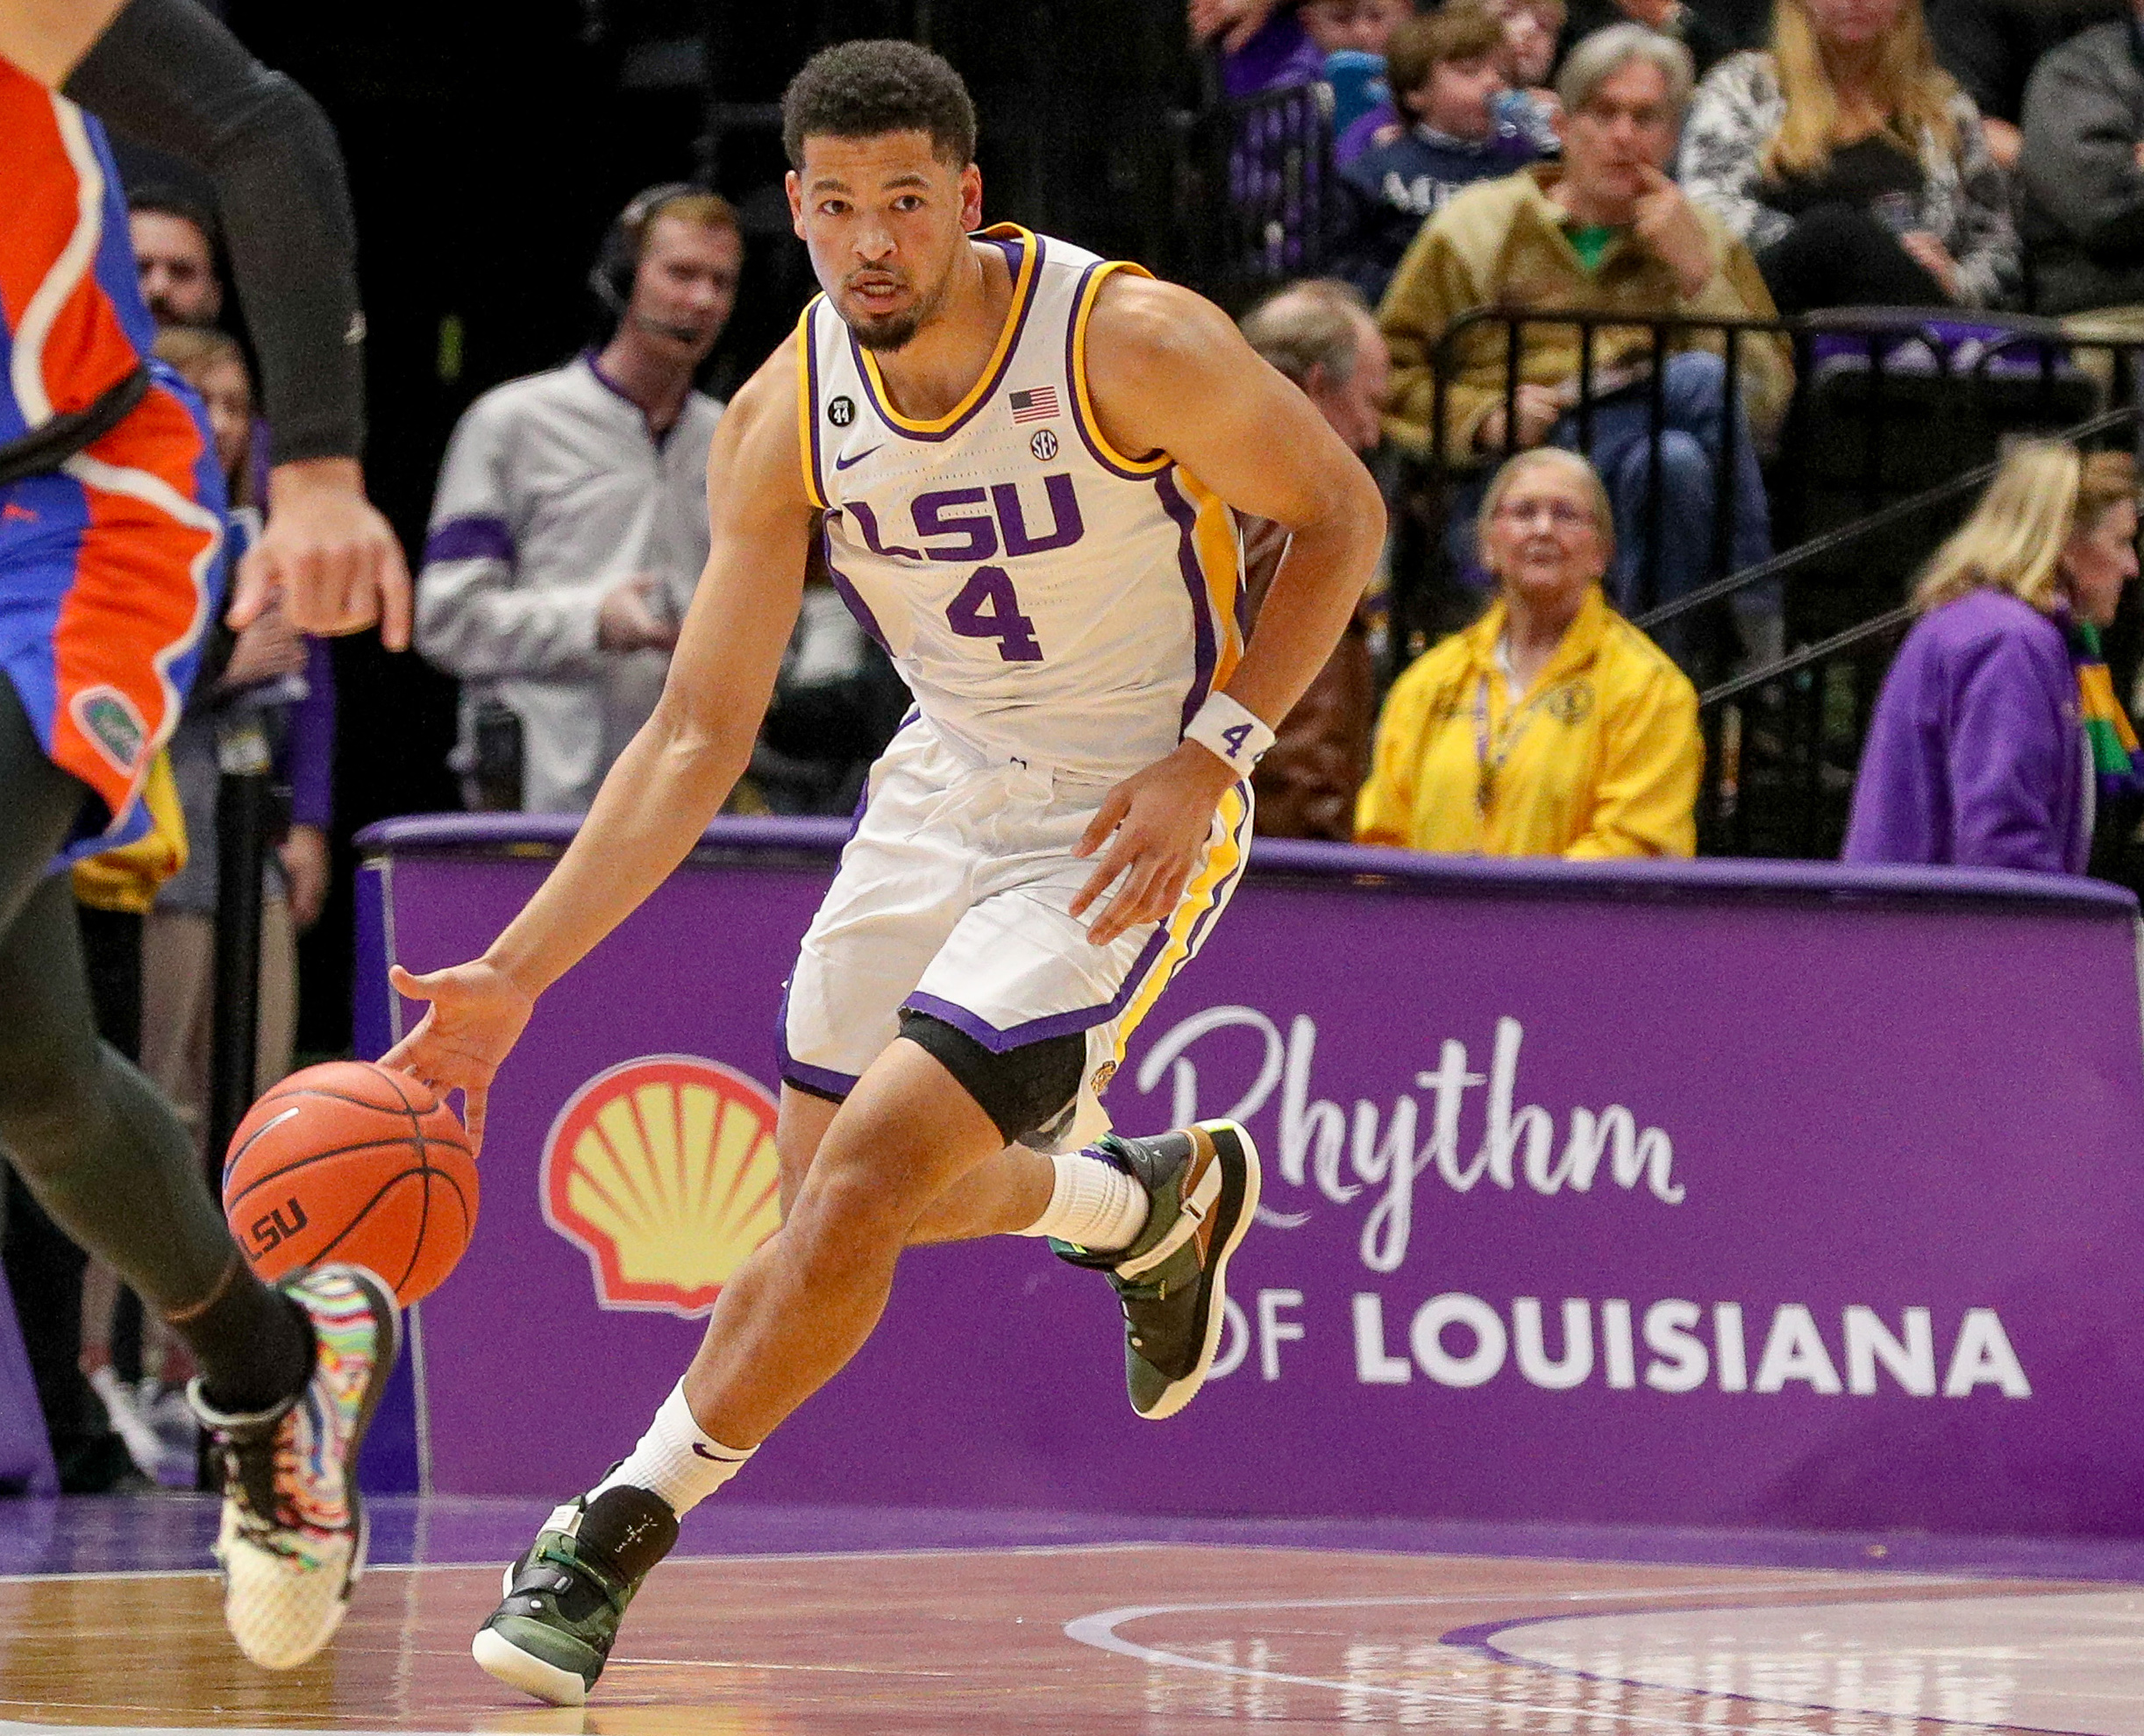 Jan 21, 2020; Baton Rouge, Louisiana, USA; LSU Tigers guard Skylar Mays (4) brings the ball up court against the Florida Gators during the first half at Maravich Assembly Center.